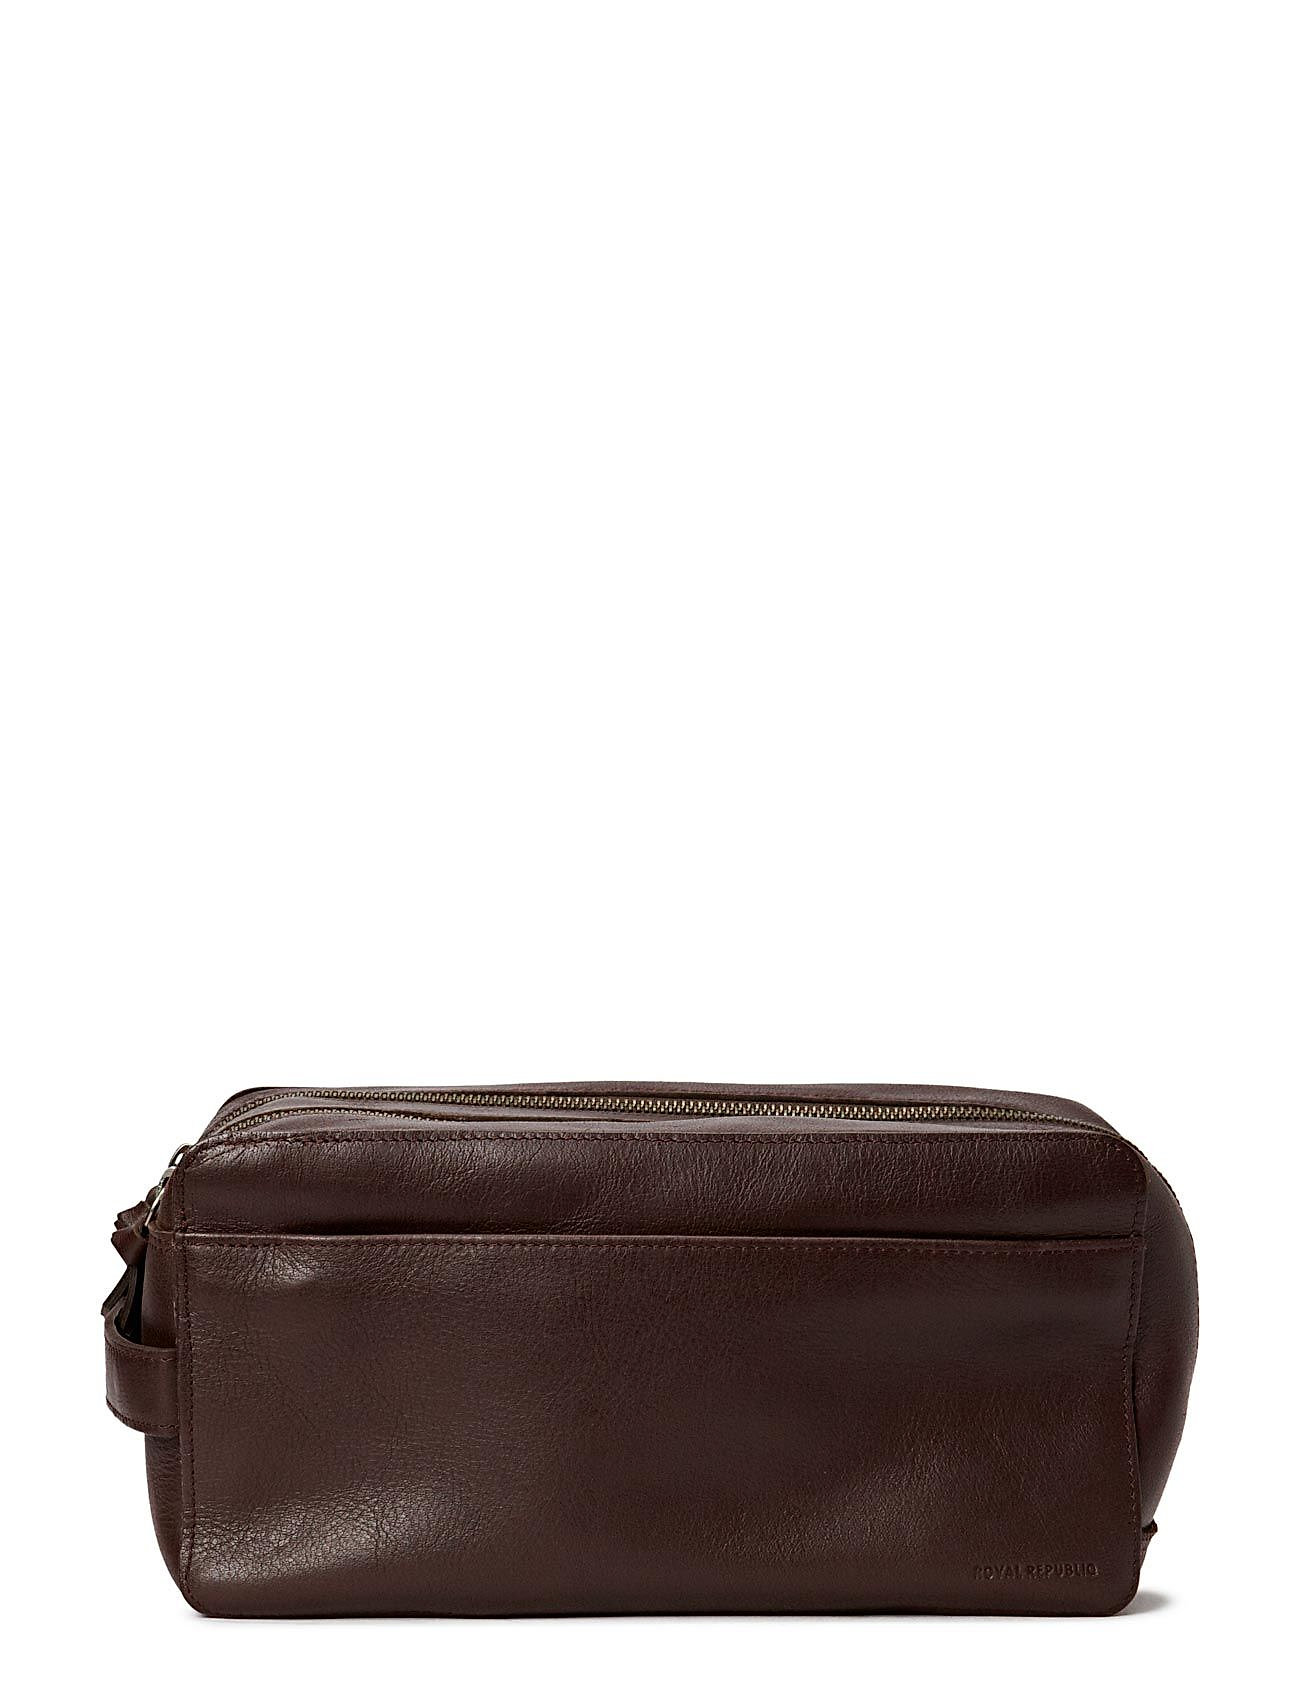 Royal RepubliQ Gemin Toilet bag - BROWN